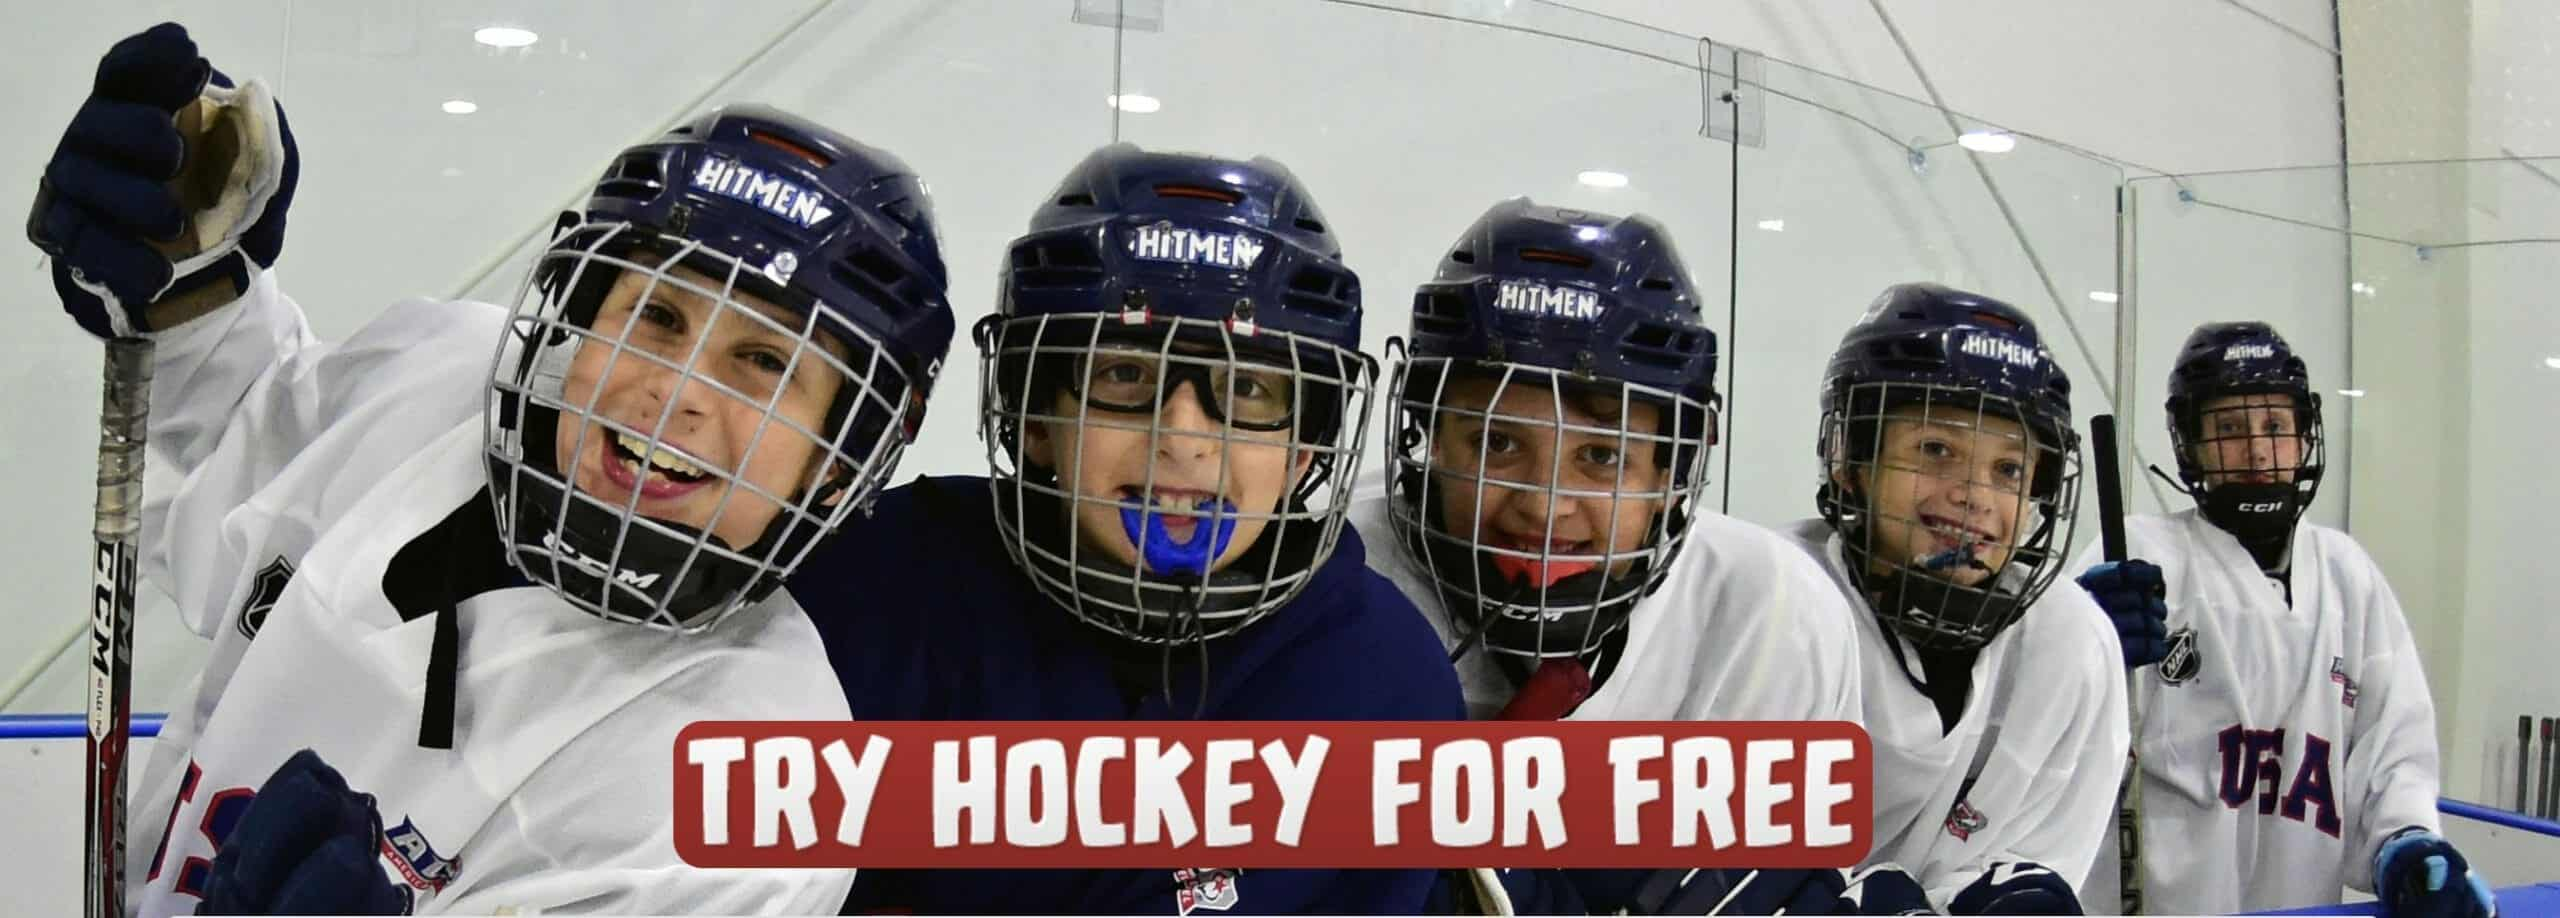 Try Hockey for Free at Optimist Ice Arena Jackson Michigan